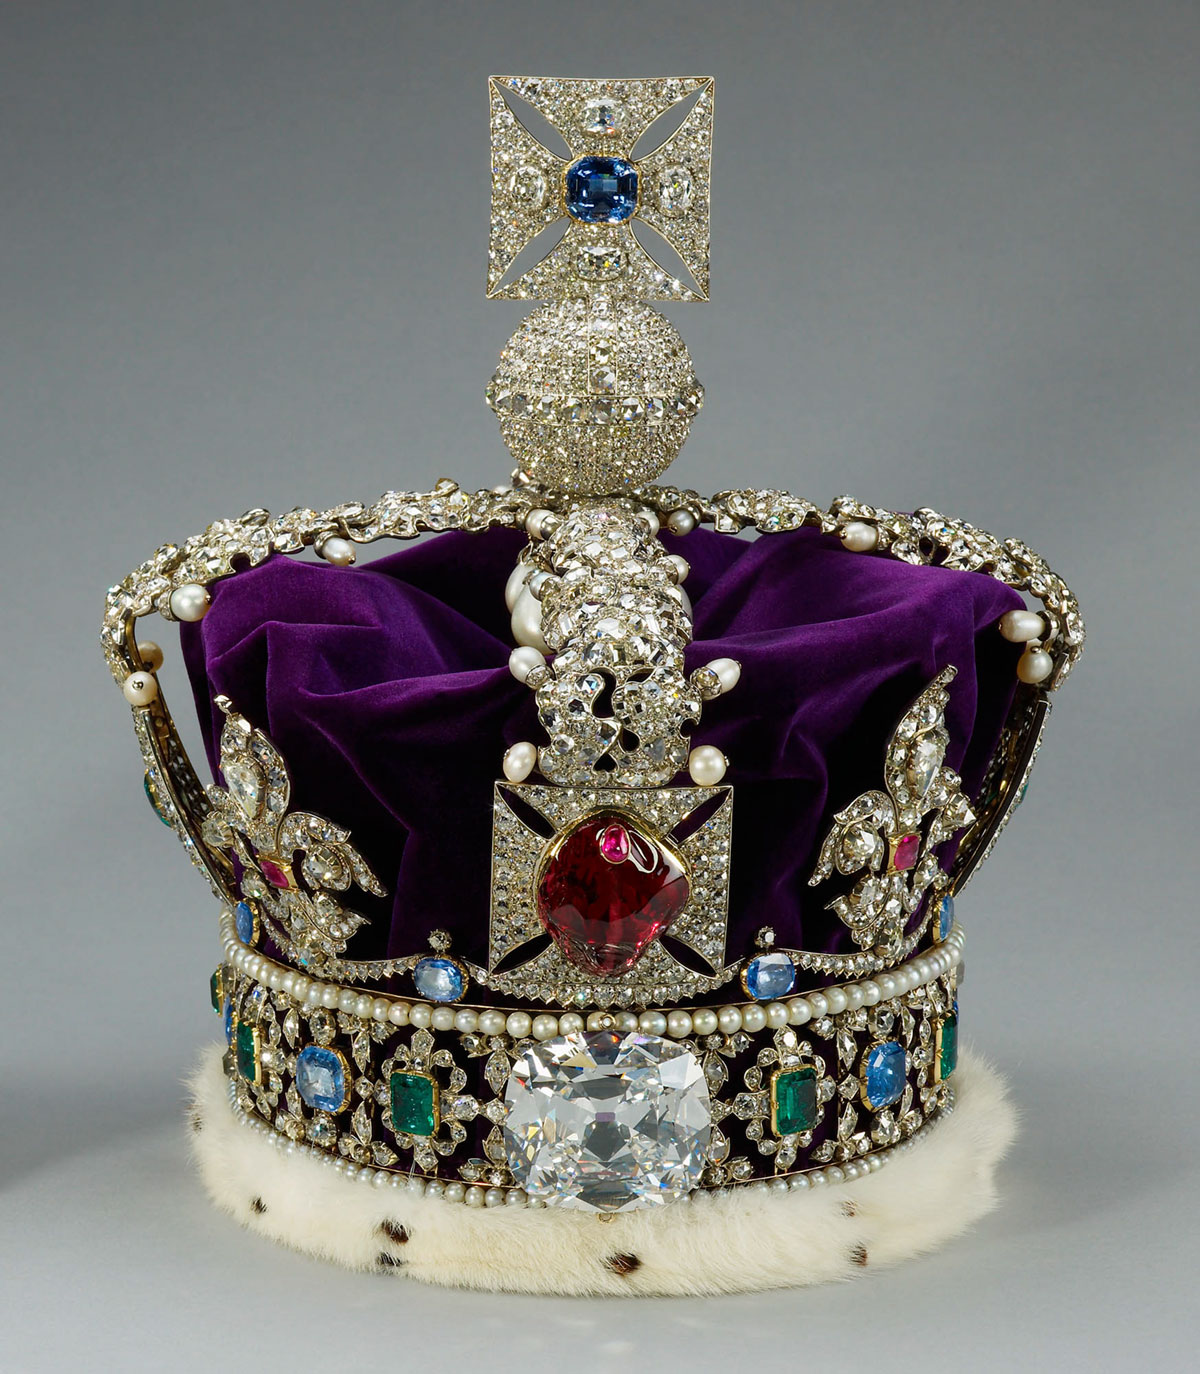 Perhaps the world's most famous gem, the Black Prince's Ruby (front, center), is actually a large red spinel. Its history is documented back to 1366 AD. Today it is mounted on the front of Britain's Imperial State Crown, which is located in the Tower of London. Britain's Imperial State Crown contains more famous gems than virtually any other ornament in the world, including the Black Prince's Ruby, the Stuart Sapphire (not visible), St. Edward's Sapphire (on top) and the Cullinan II diamond (below the Black Prince's Ruby).